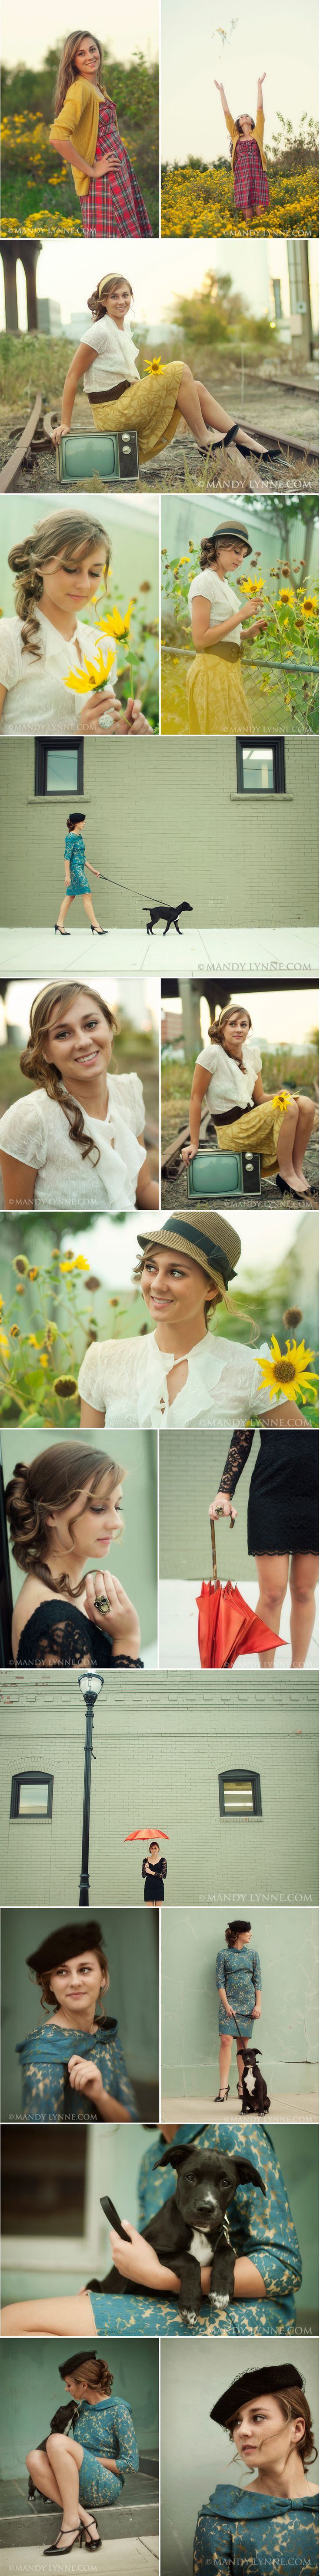 I love all of these!  I want my senior photos to look something like this